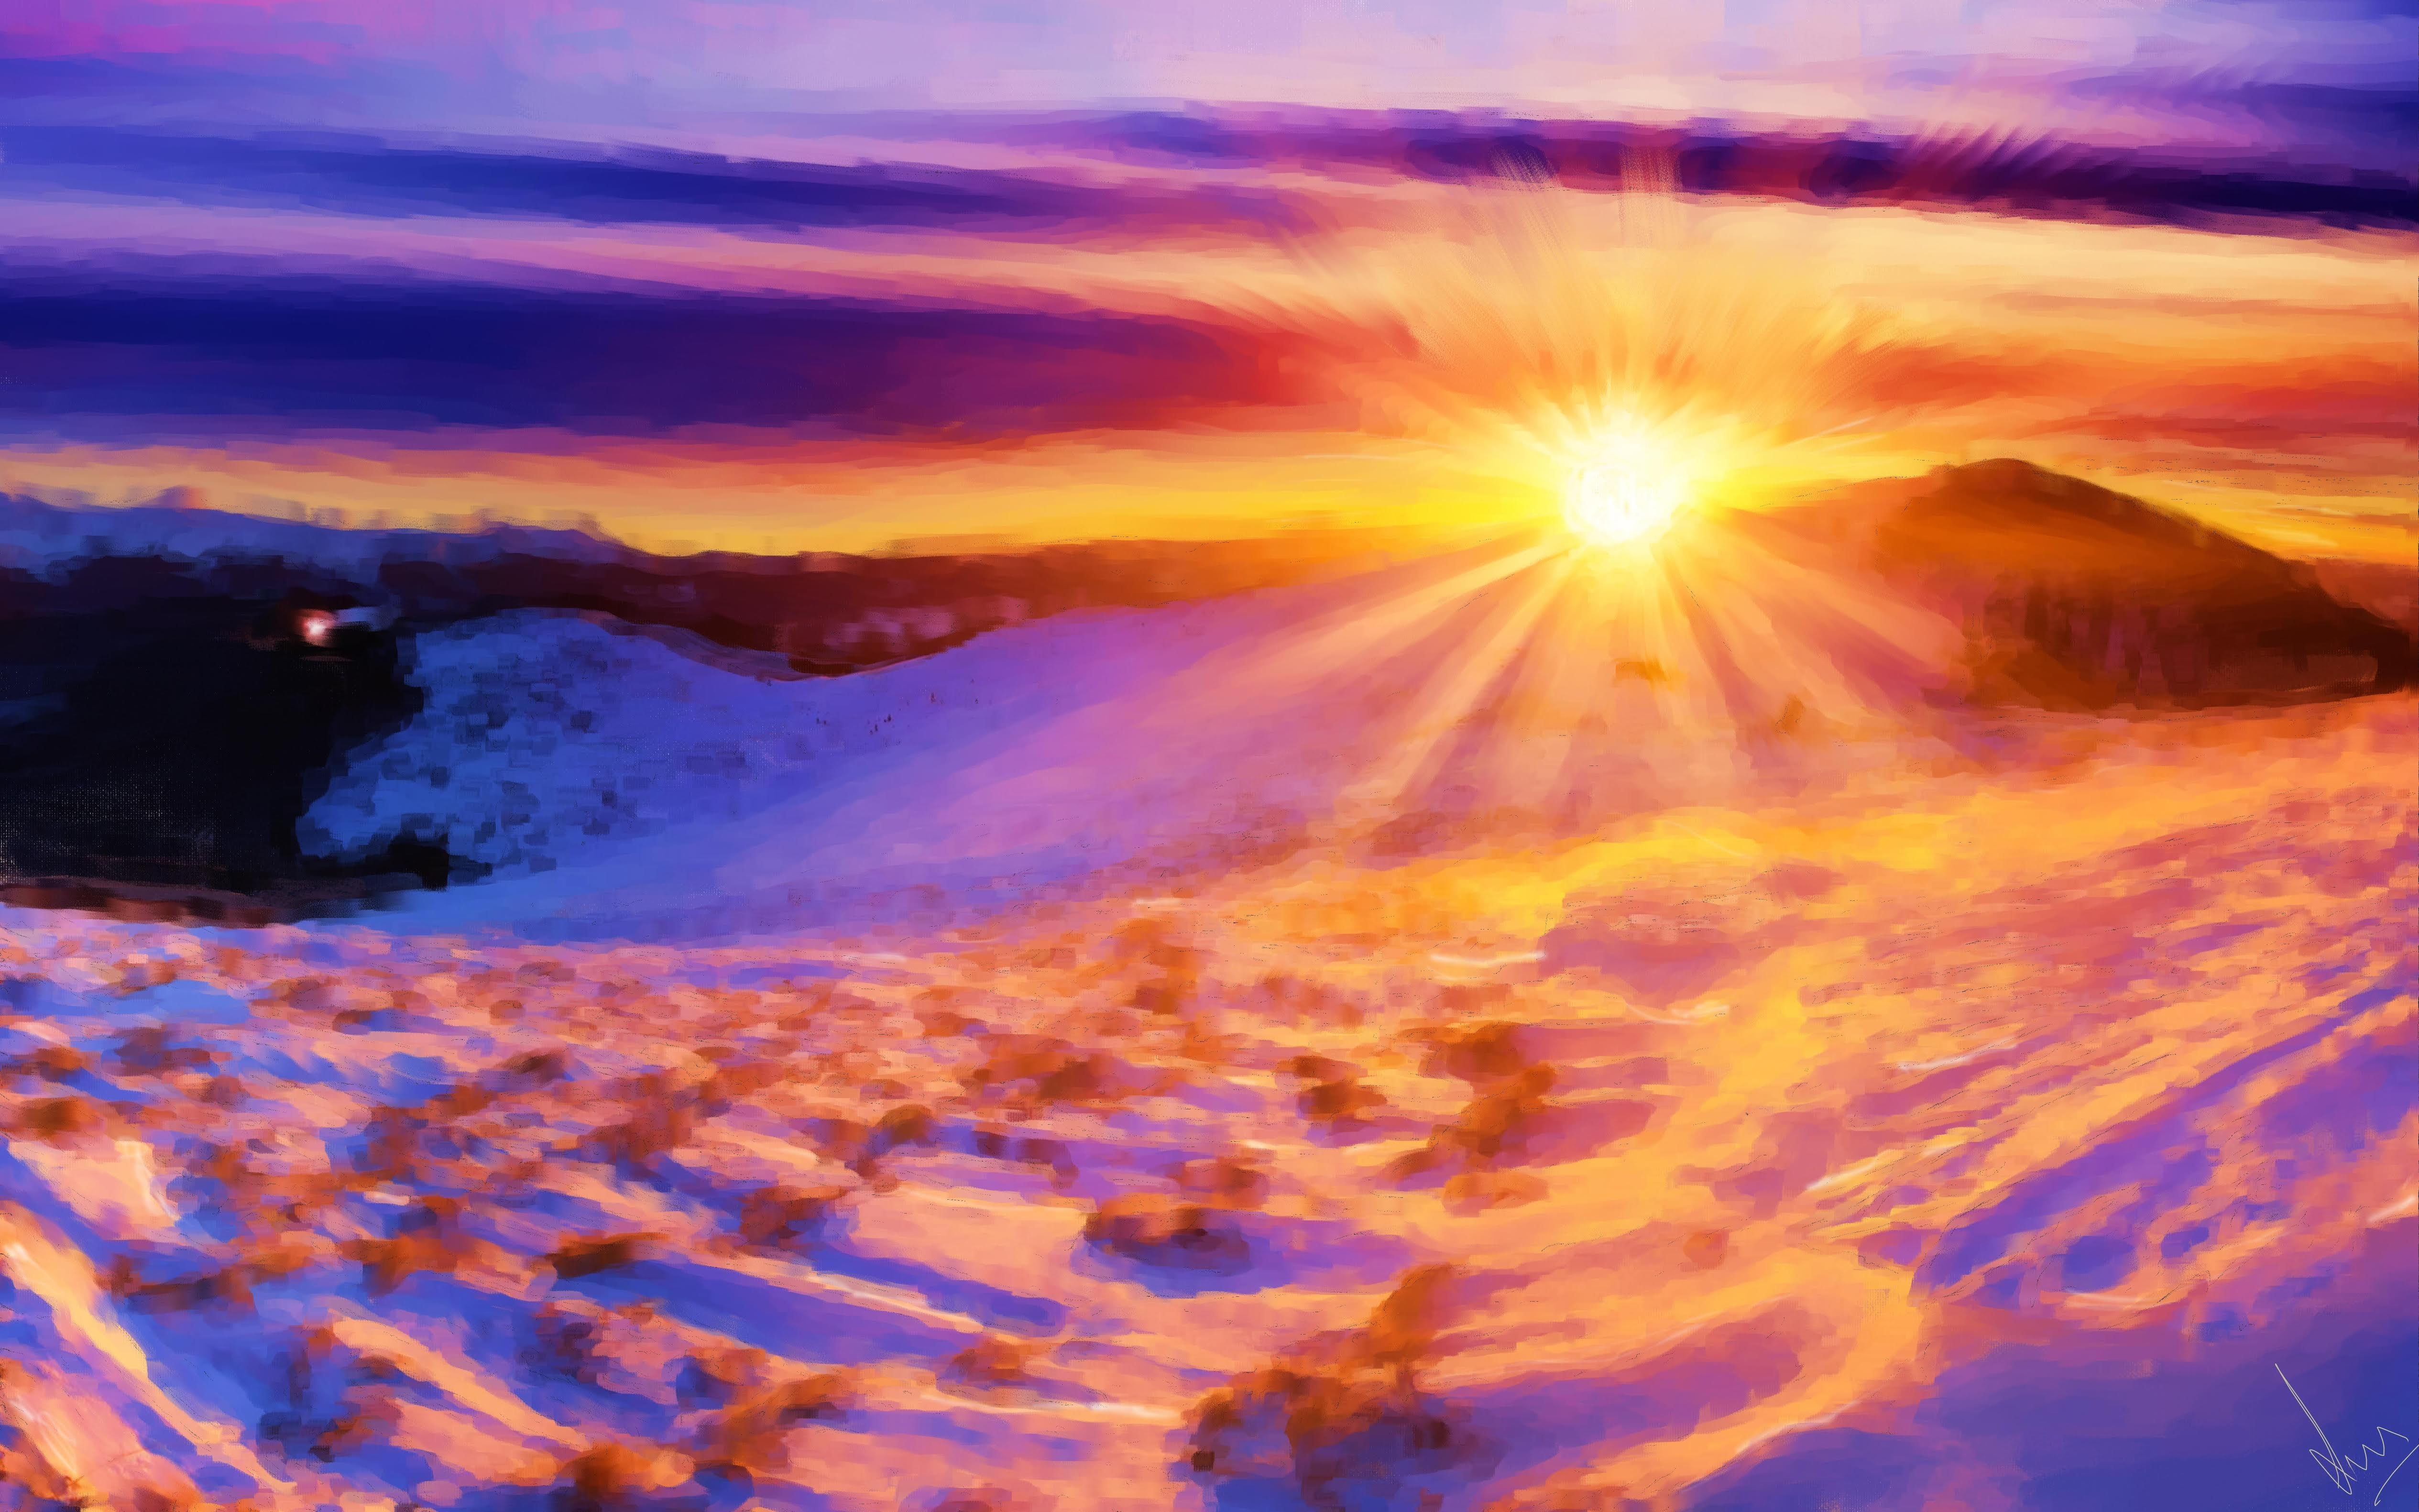 Snowy Sunrise - Digital Painting by Shaalyn Monteiro